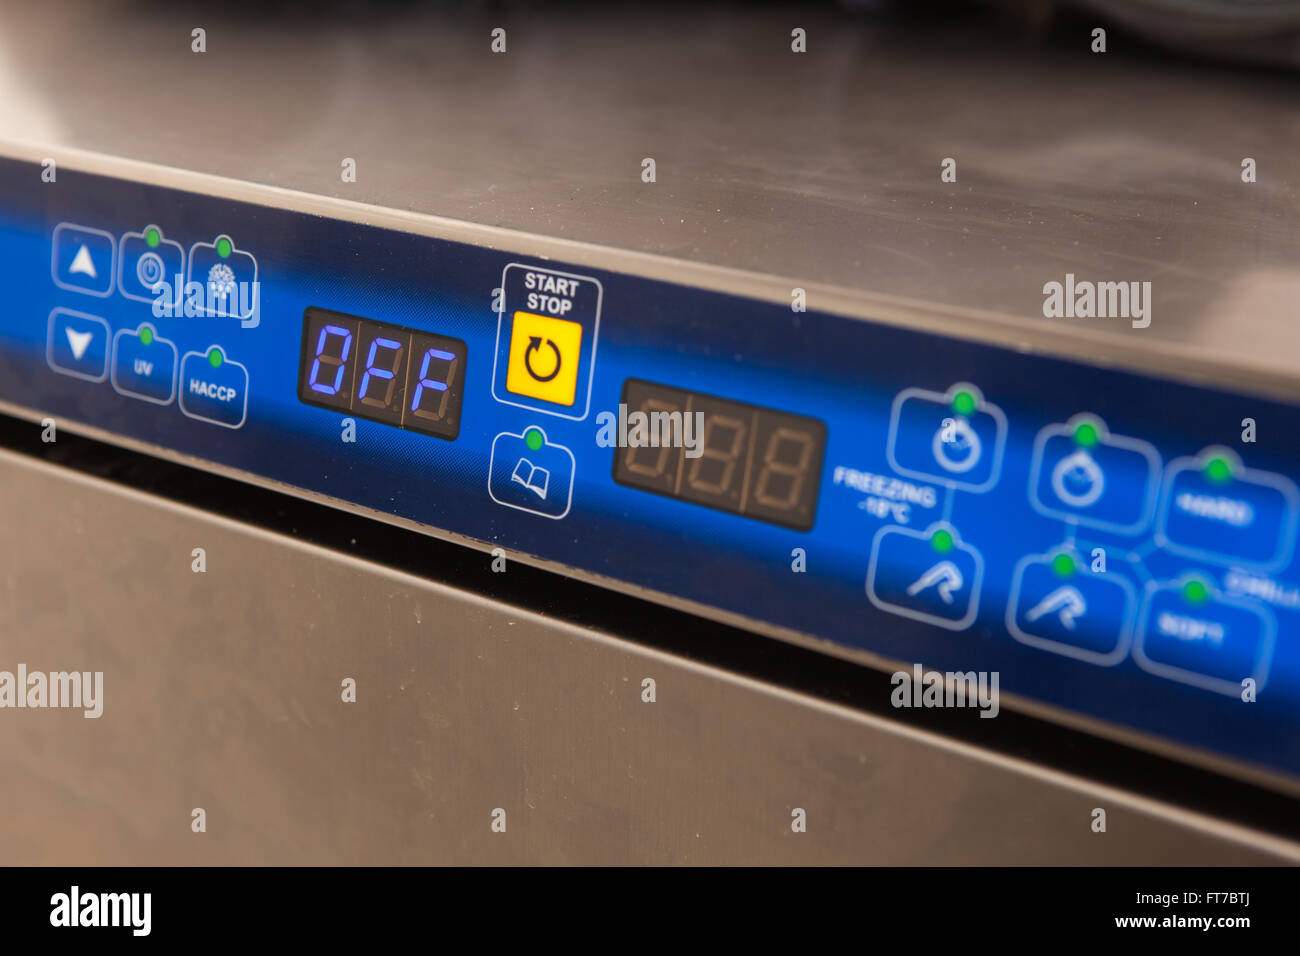 digital appliances - Stock Image